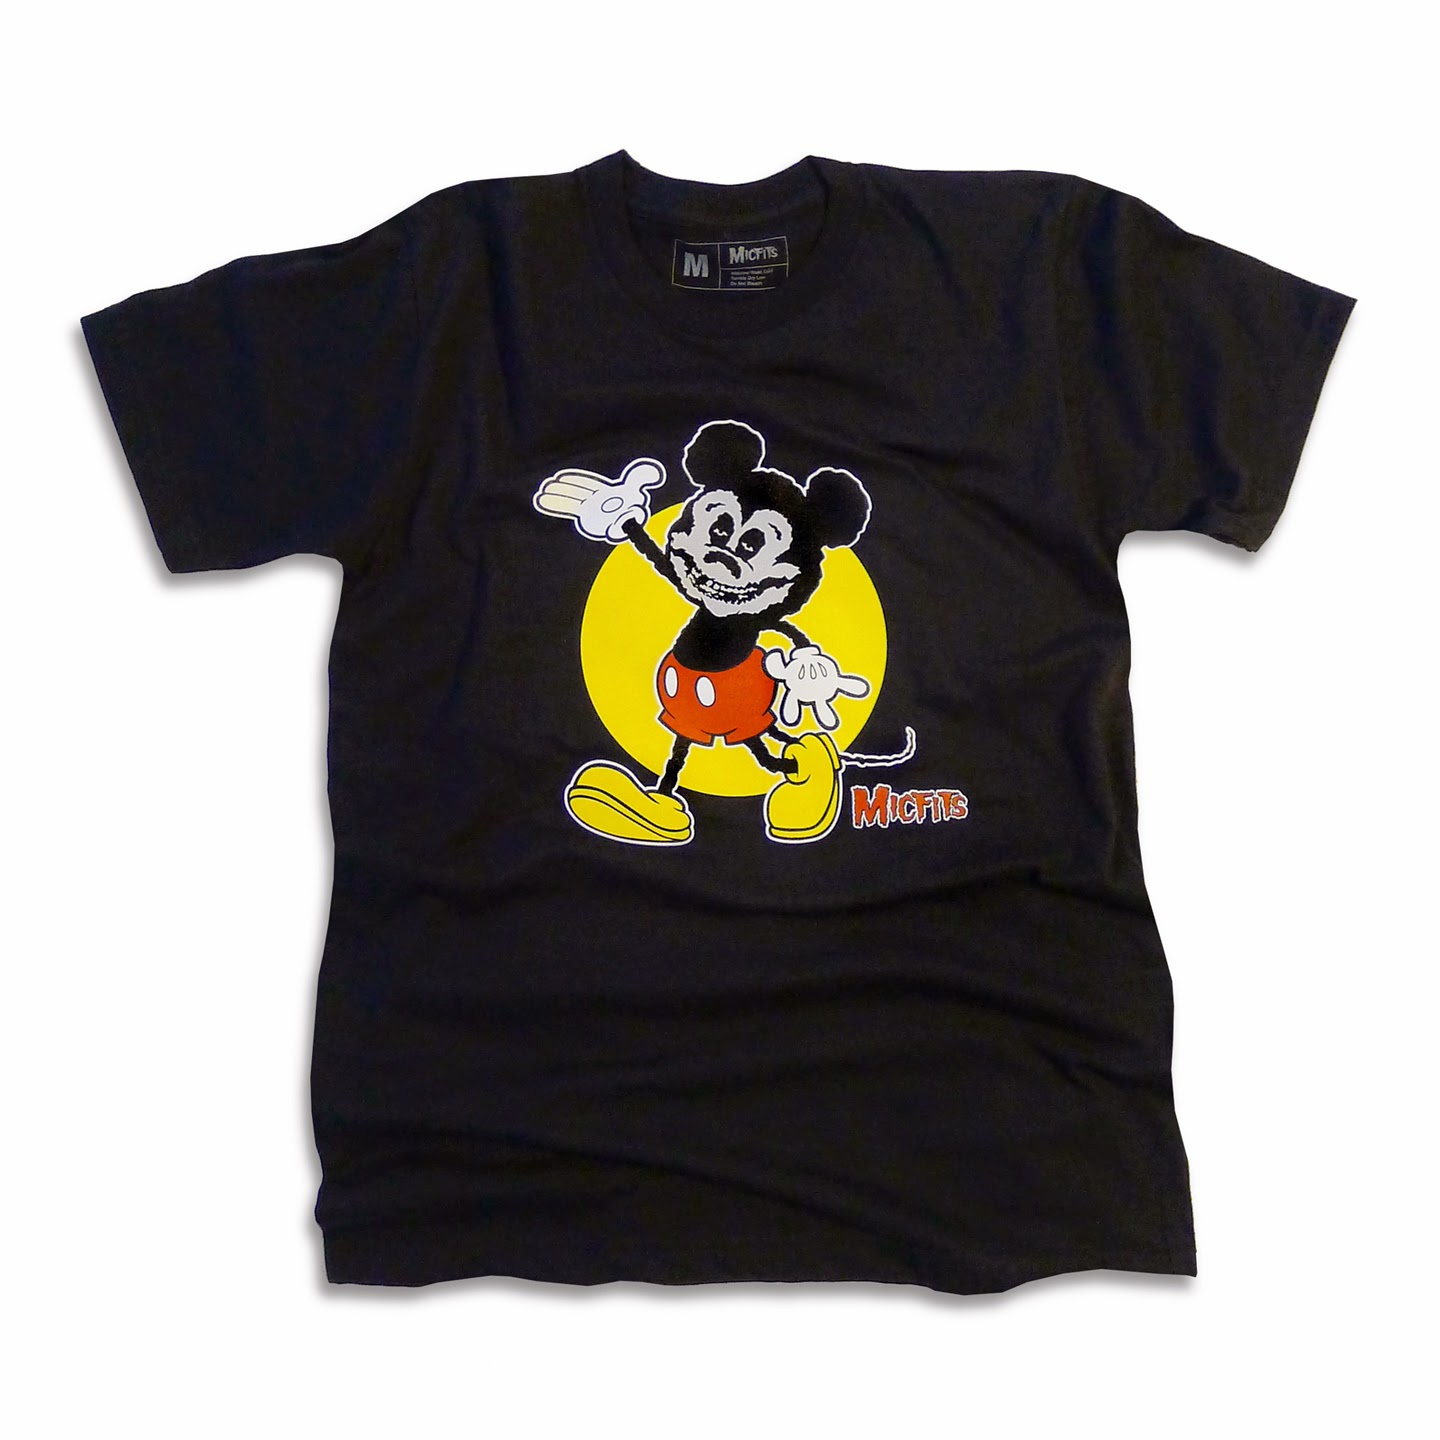 Micfits Social Club Disney Mickey Mouse T-Shirt by Chamuco's Studios